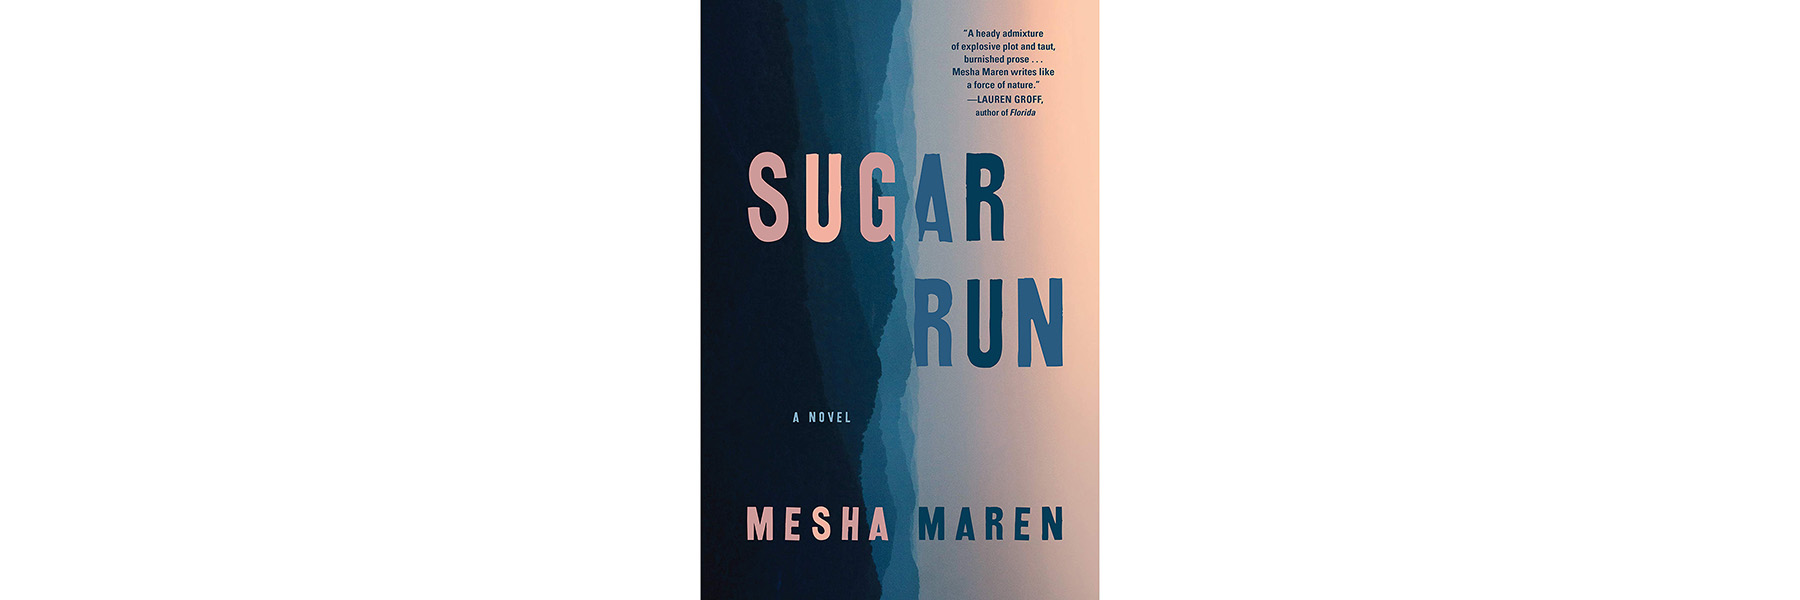 Cover of Sugar Run, by Mesha Maren